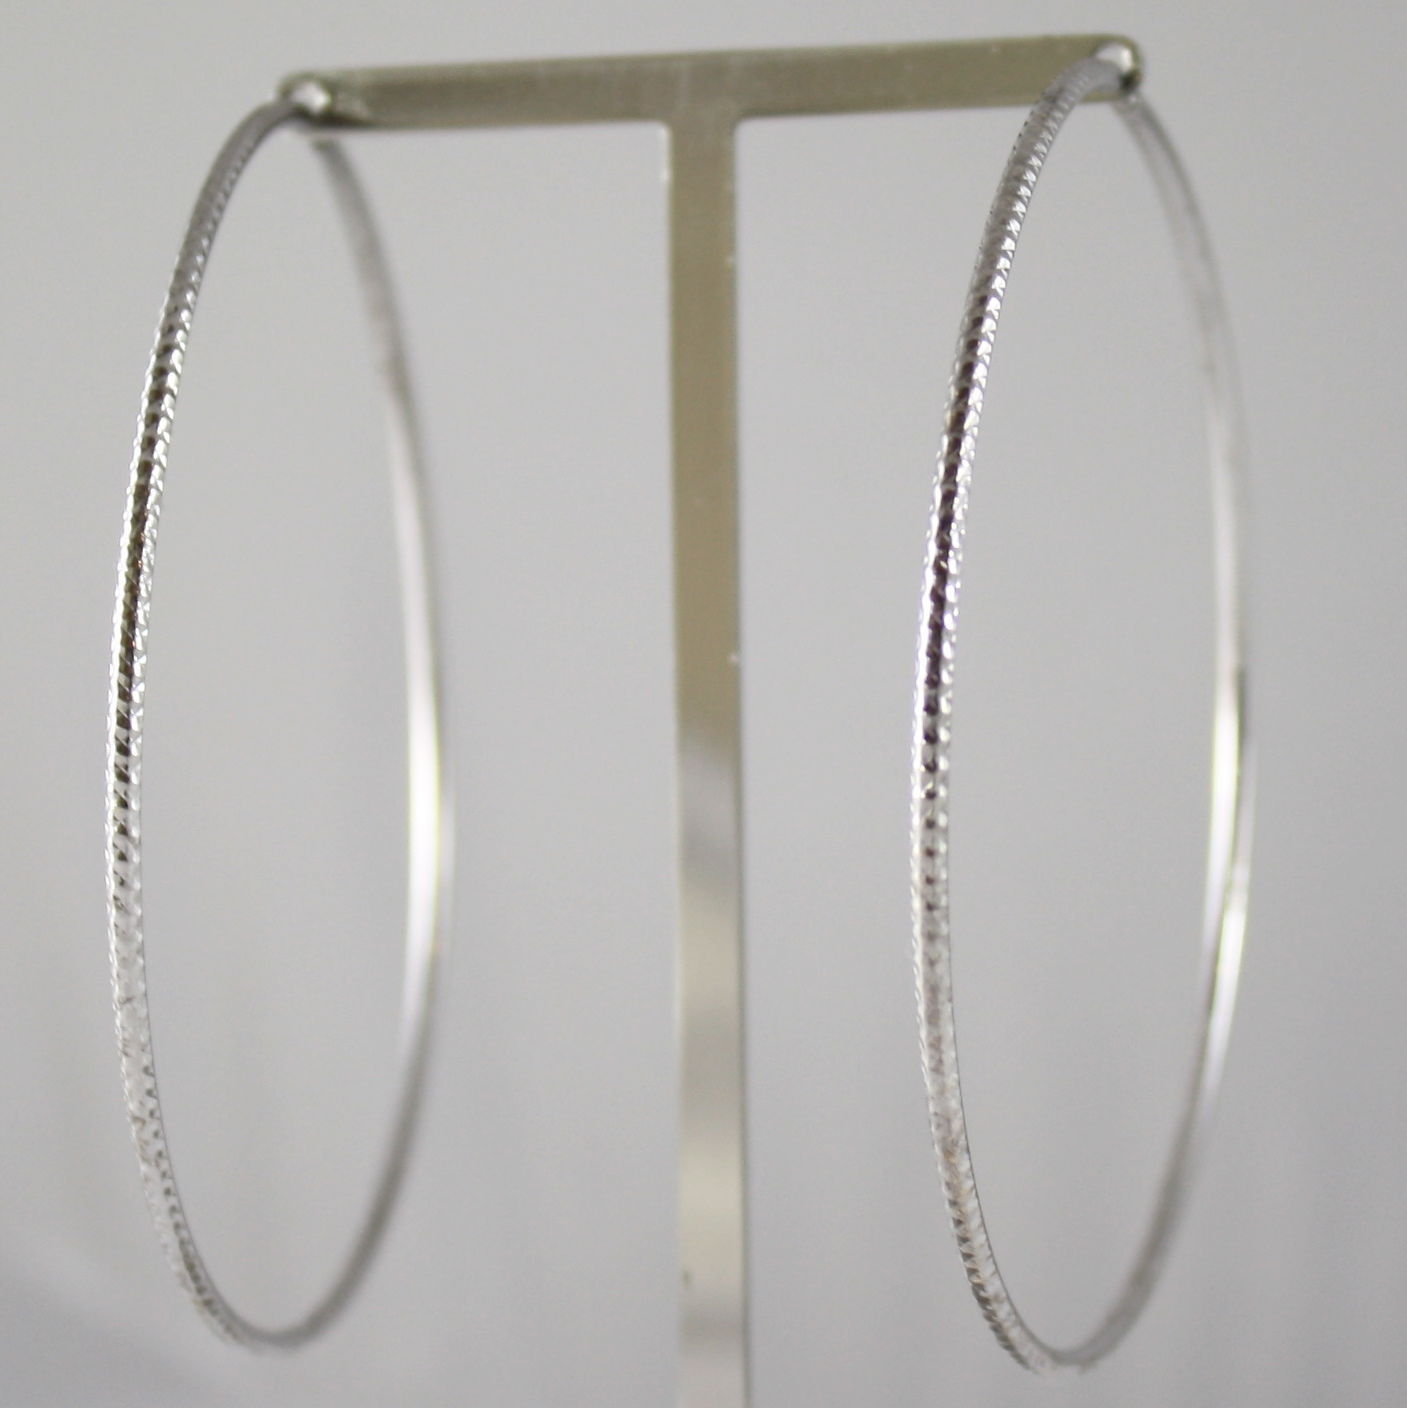 SOLID 18K WHITE GOLD CIRCLE EARRINGS HOOP, WORKED, DIAM 2.64 In, MADE IN ITALY